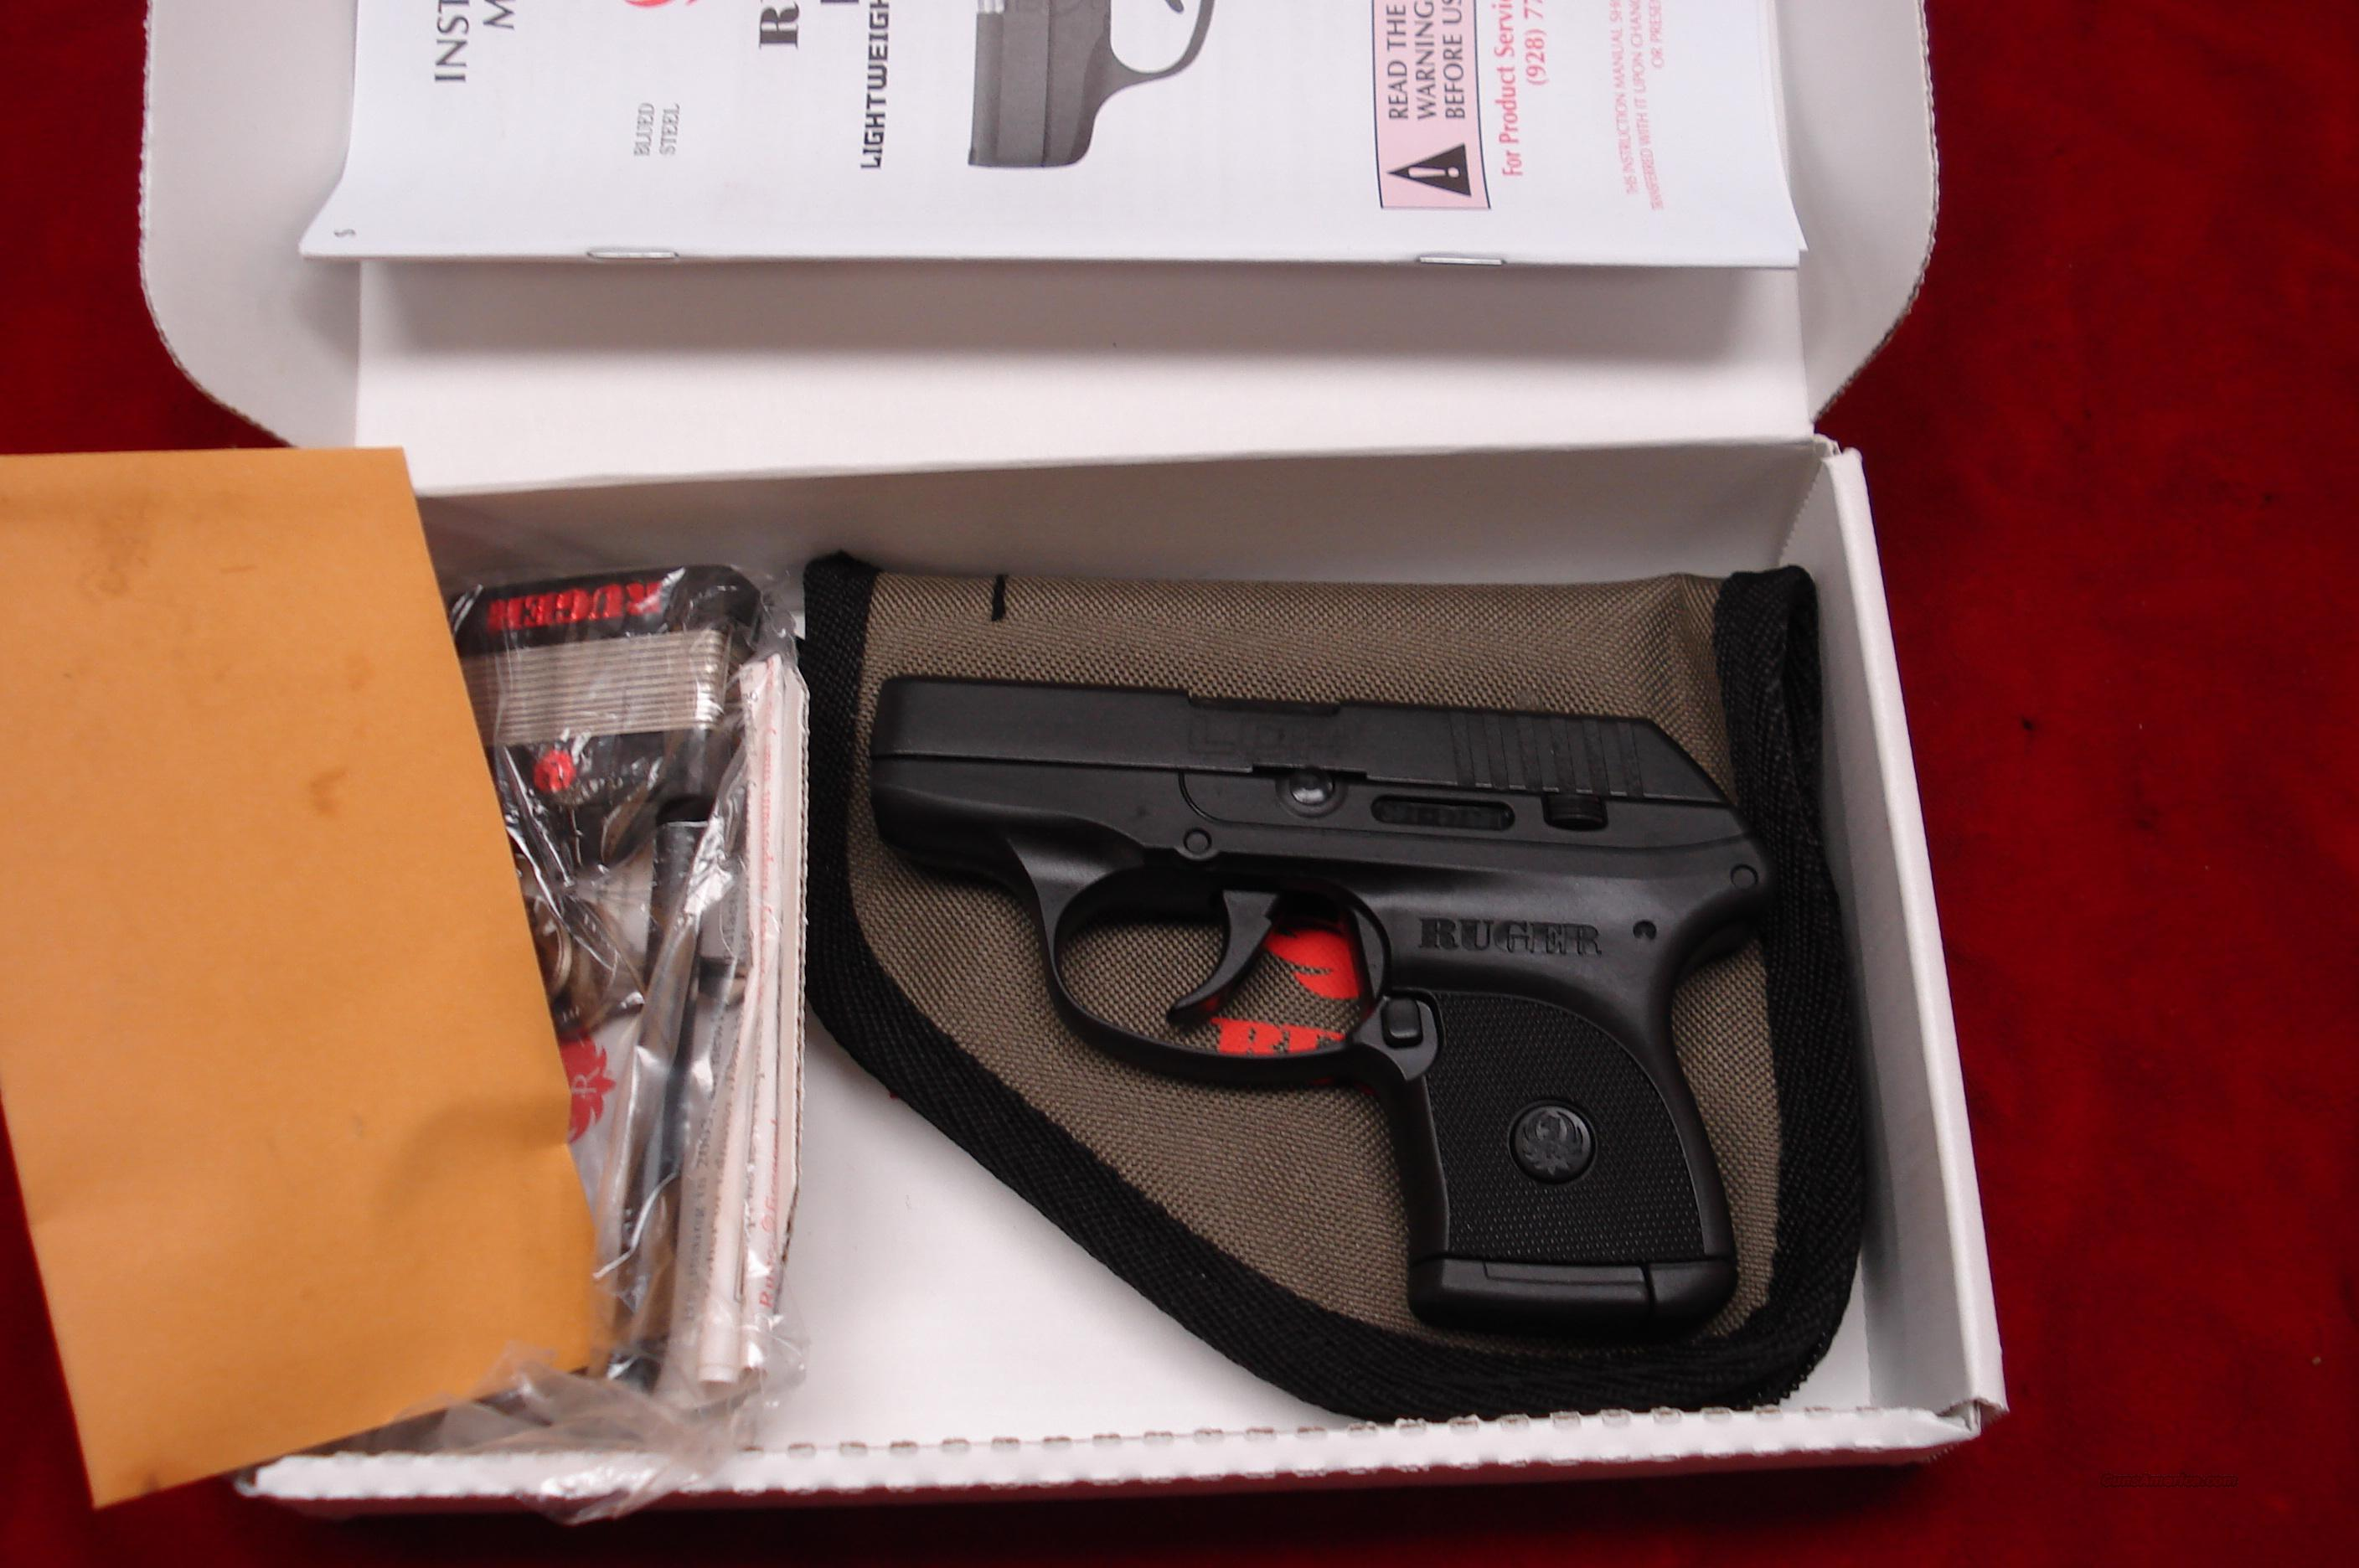 RUGER LCP  (Lightweight Compact Pistol) 380CAL. NEW  Guns > Pistols > Ruger Semi-Auto Pistols > LCP